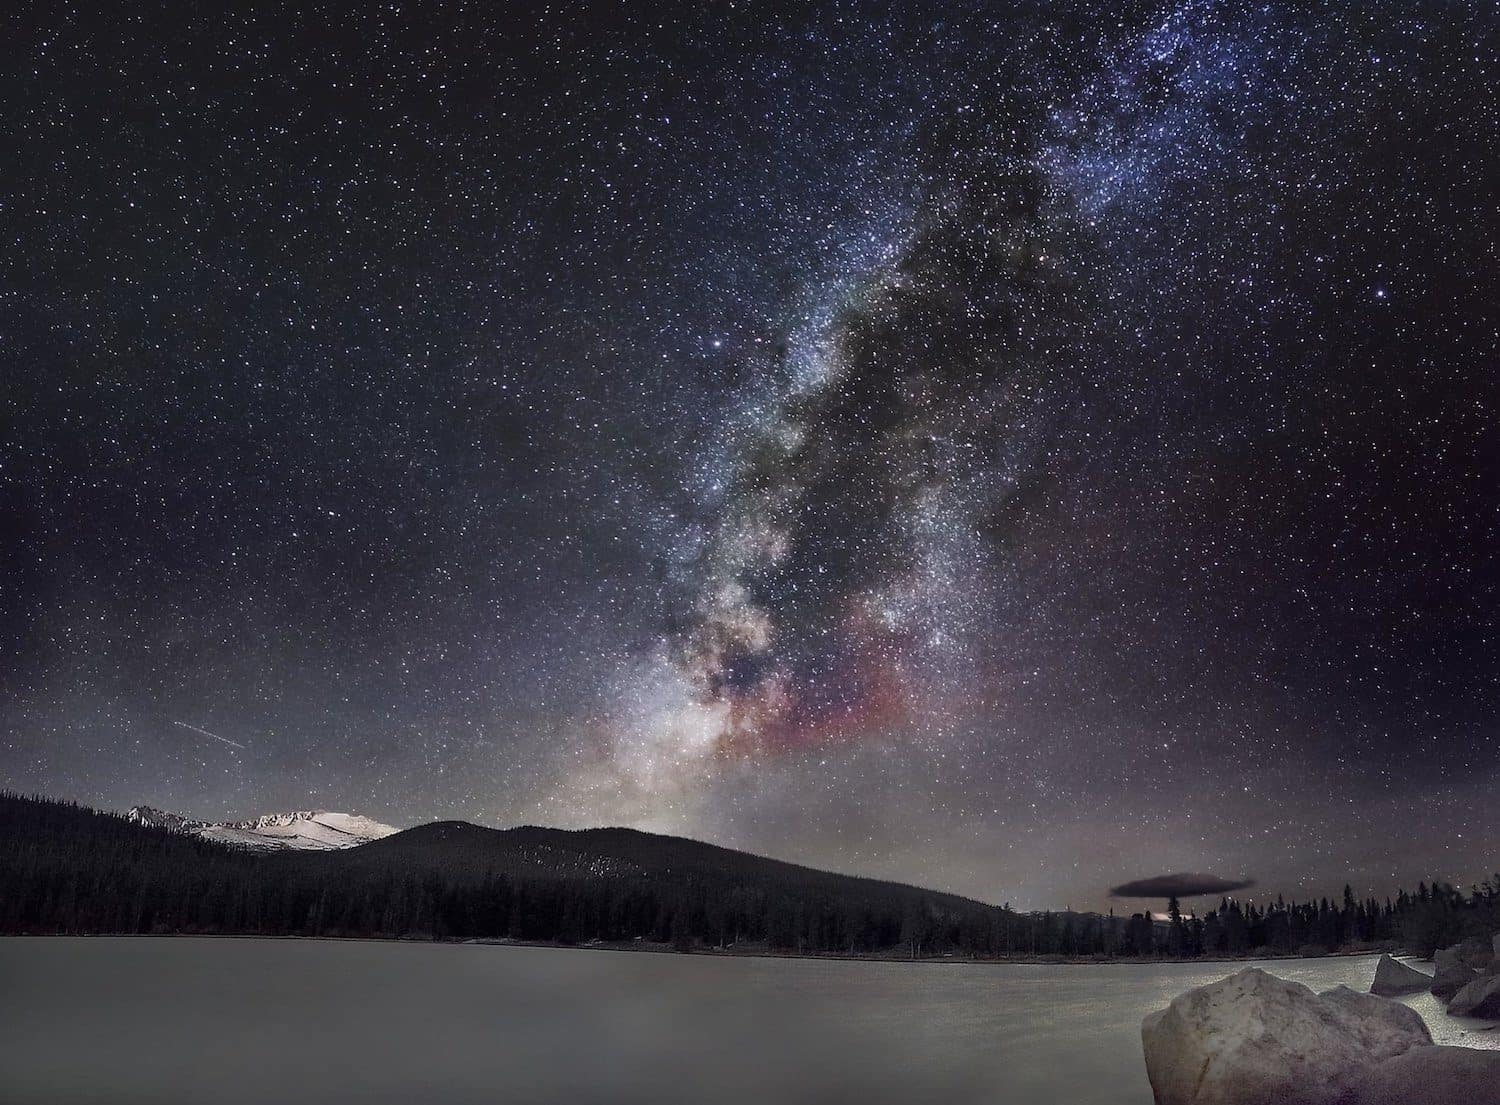 See the Milky Way - Max and Dee Bernt via Flickr